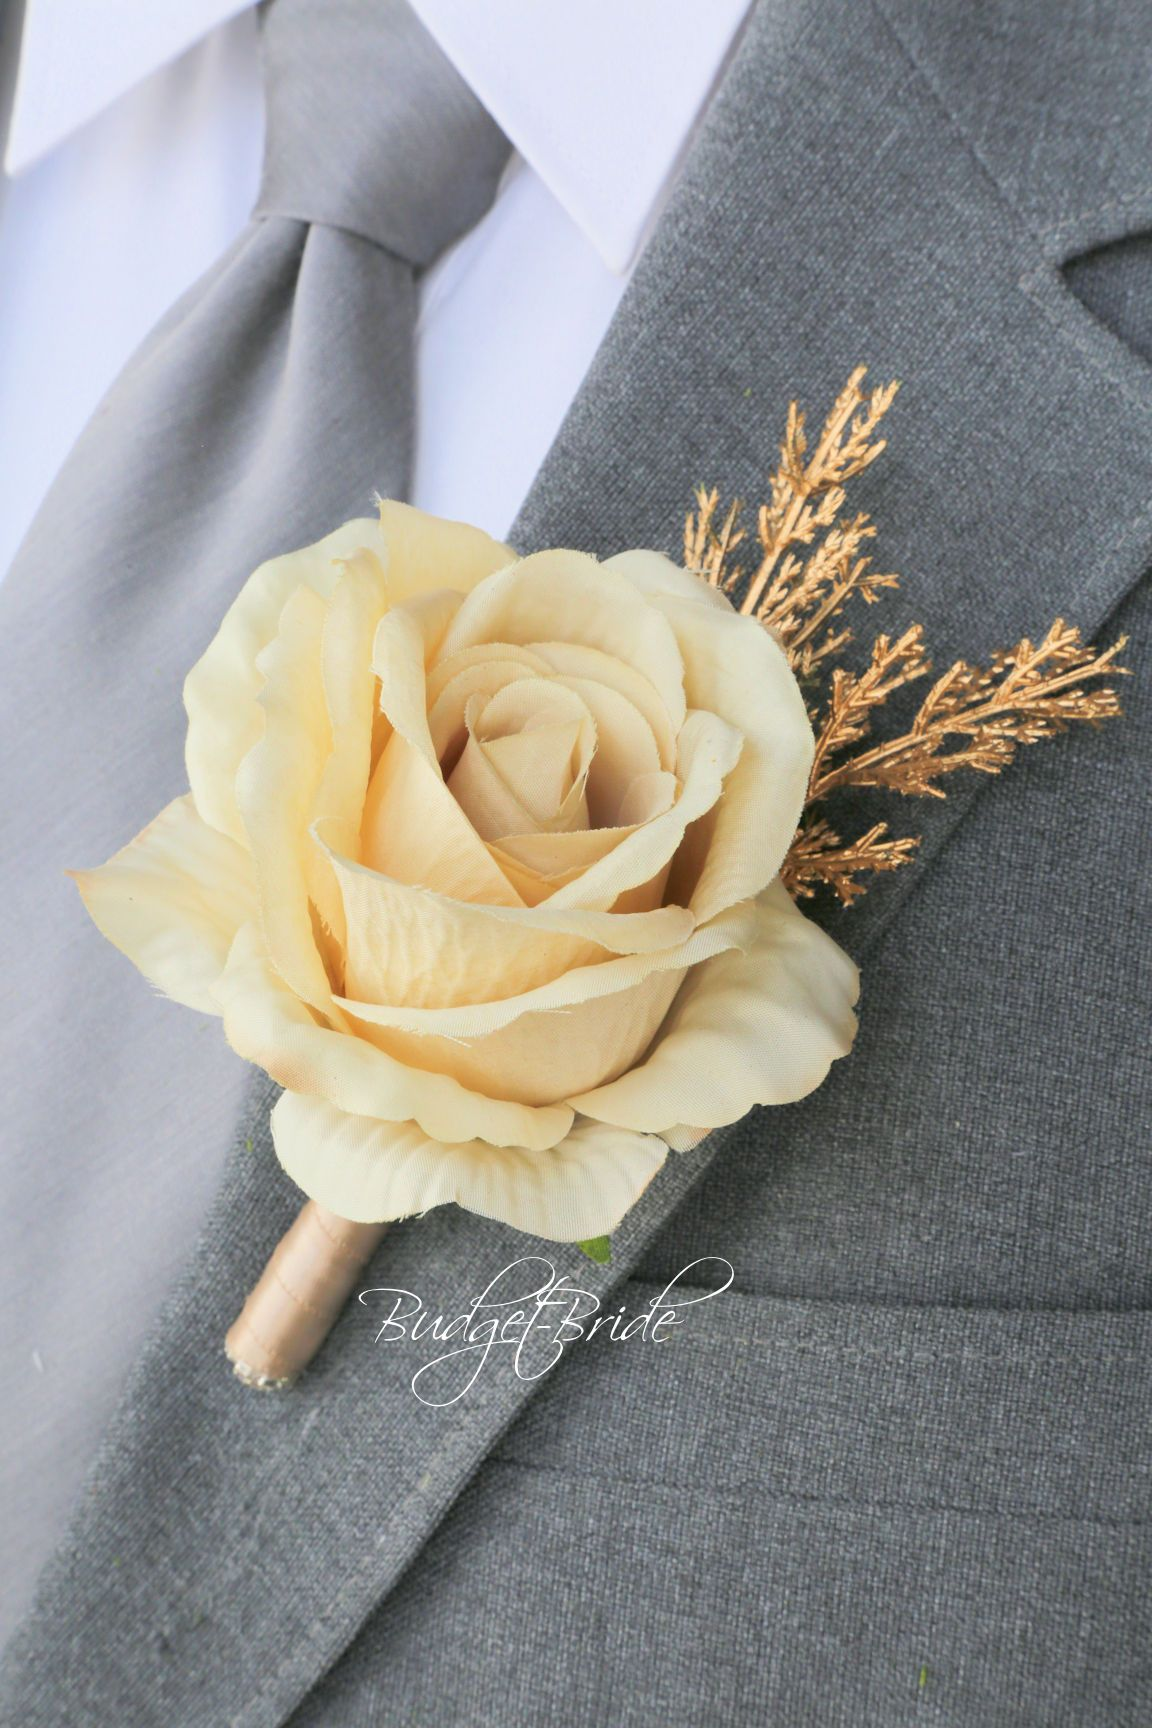 Mens Wedding Flowers In Gold With Champagne Rose And Gold Grass Prom Corsage And Boutonniere Gold Corsage Prom Red Wedding Flowers